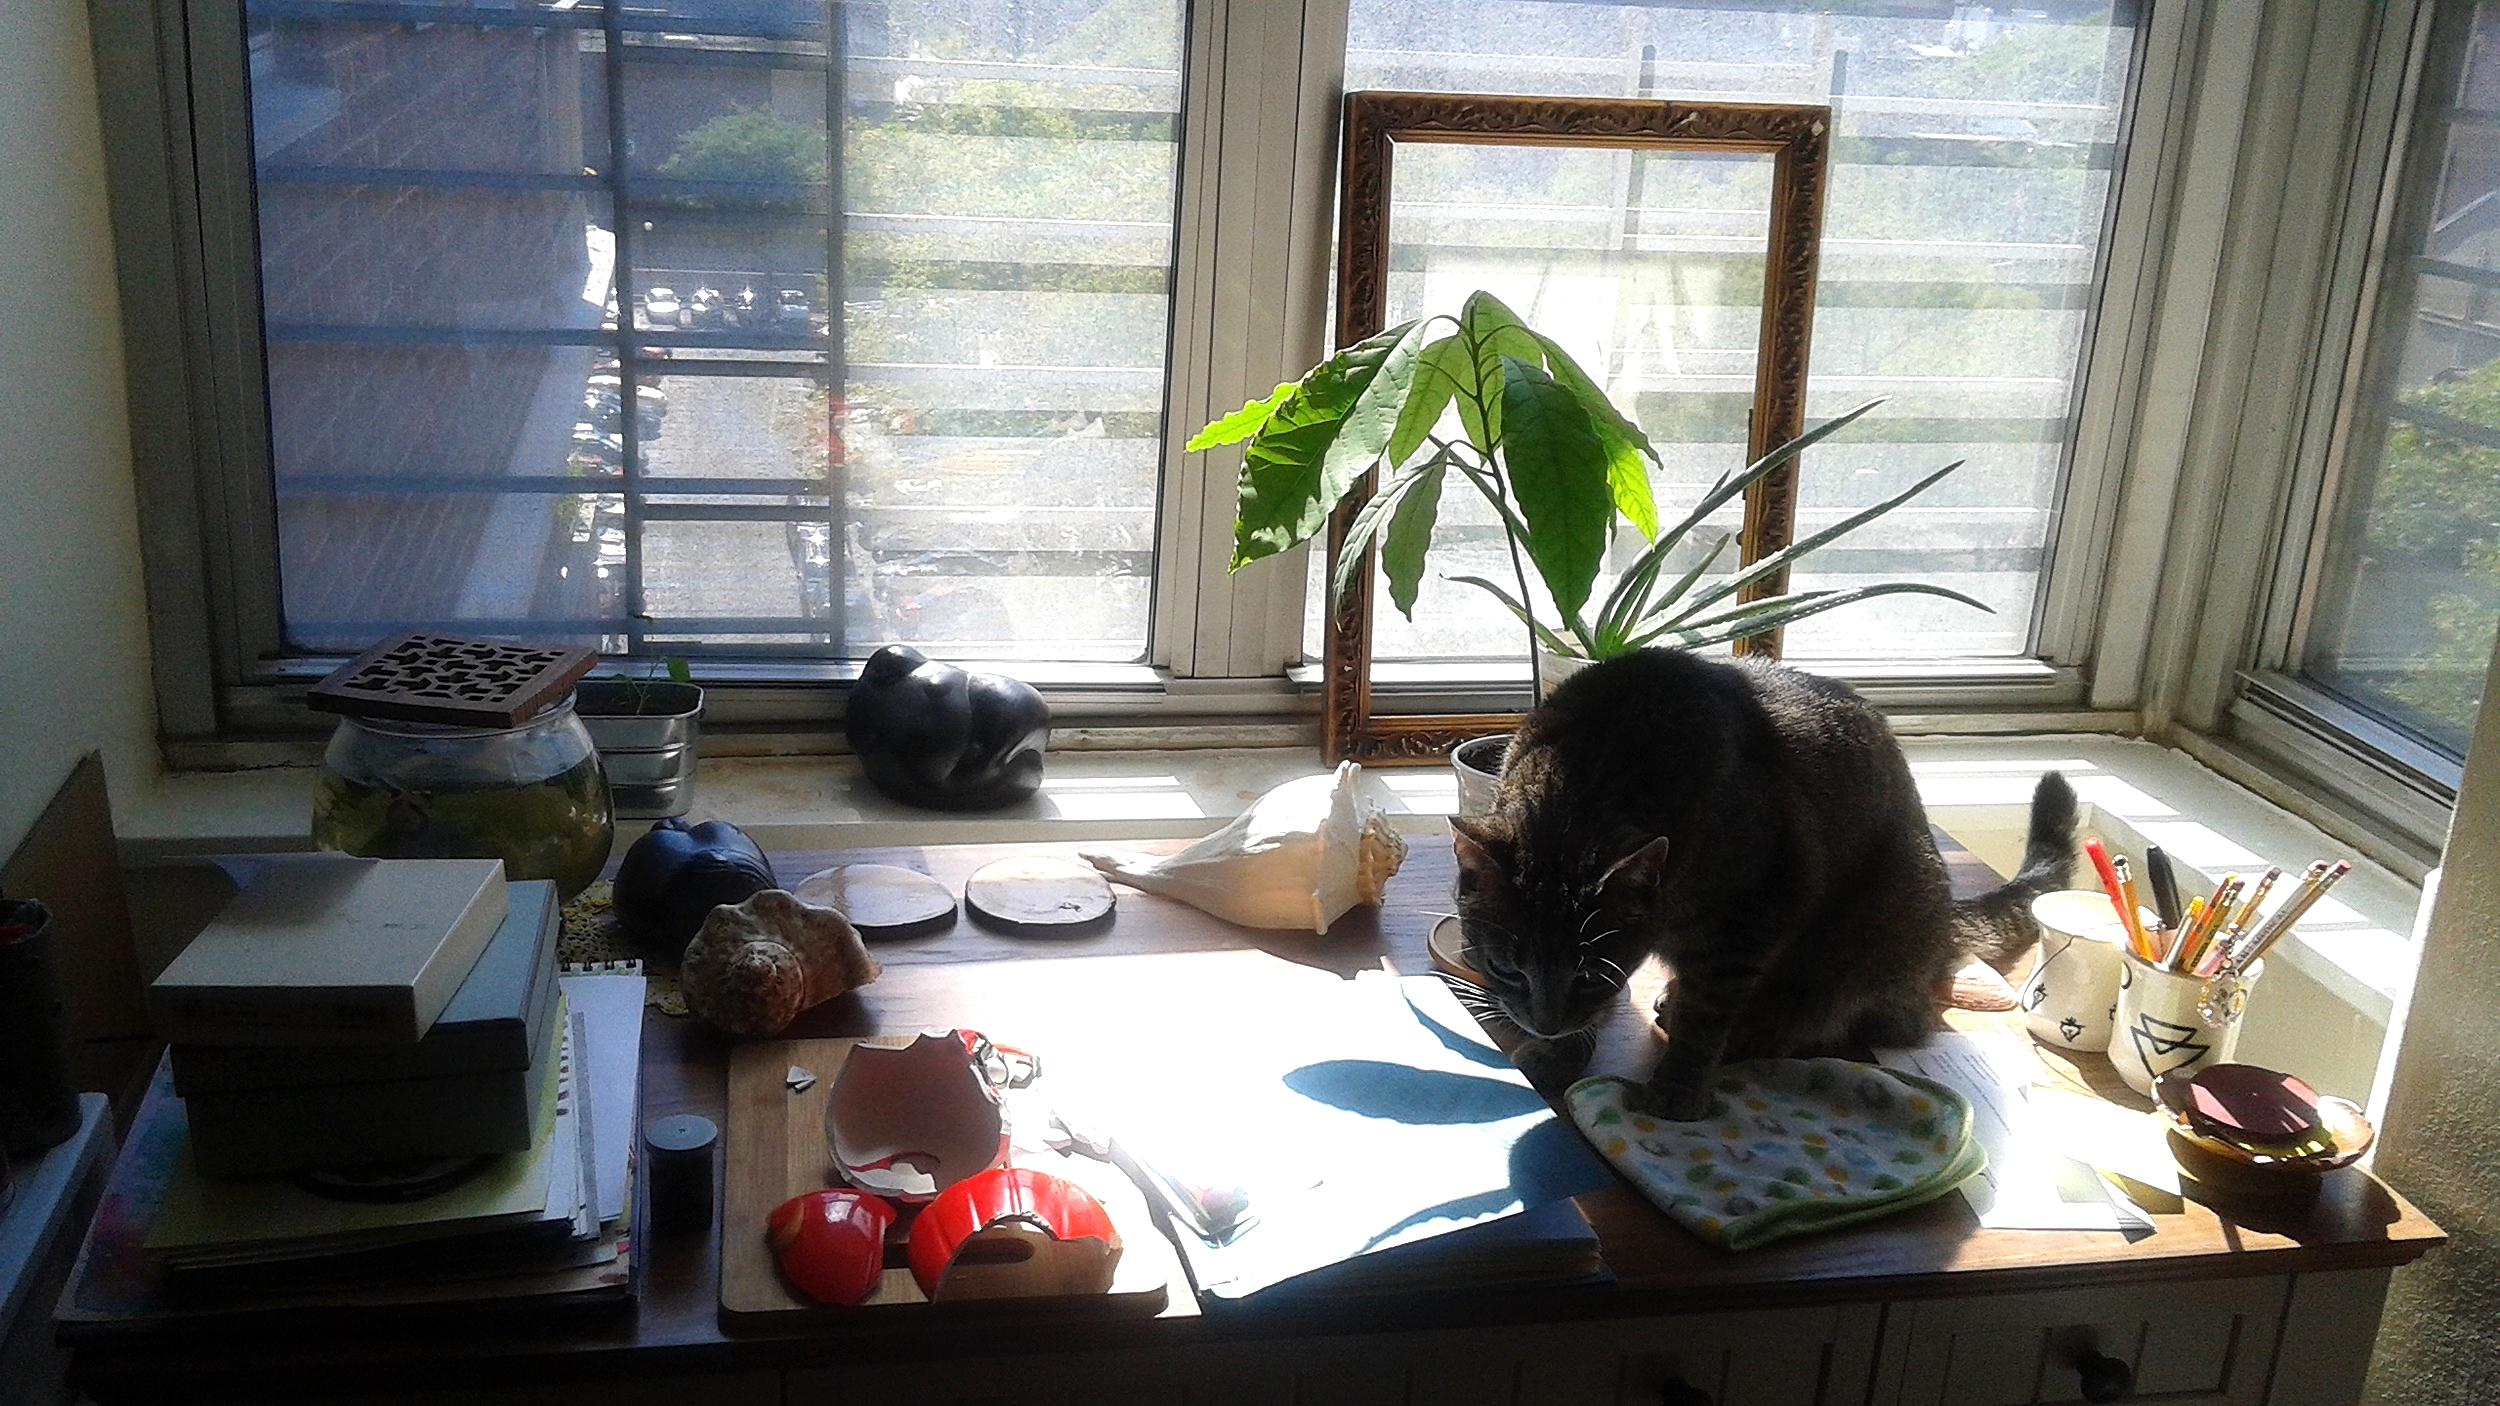 ...this is what my actual art desk looks like! The Messy Desk + cat!